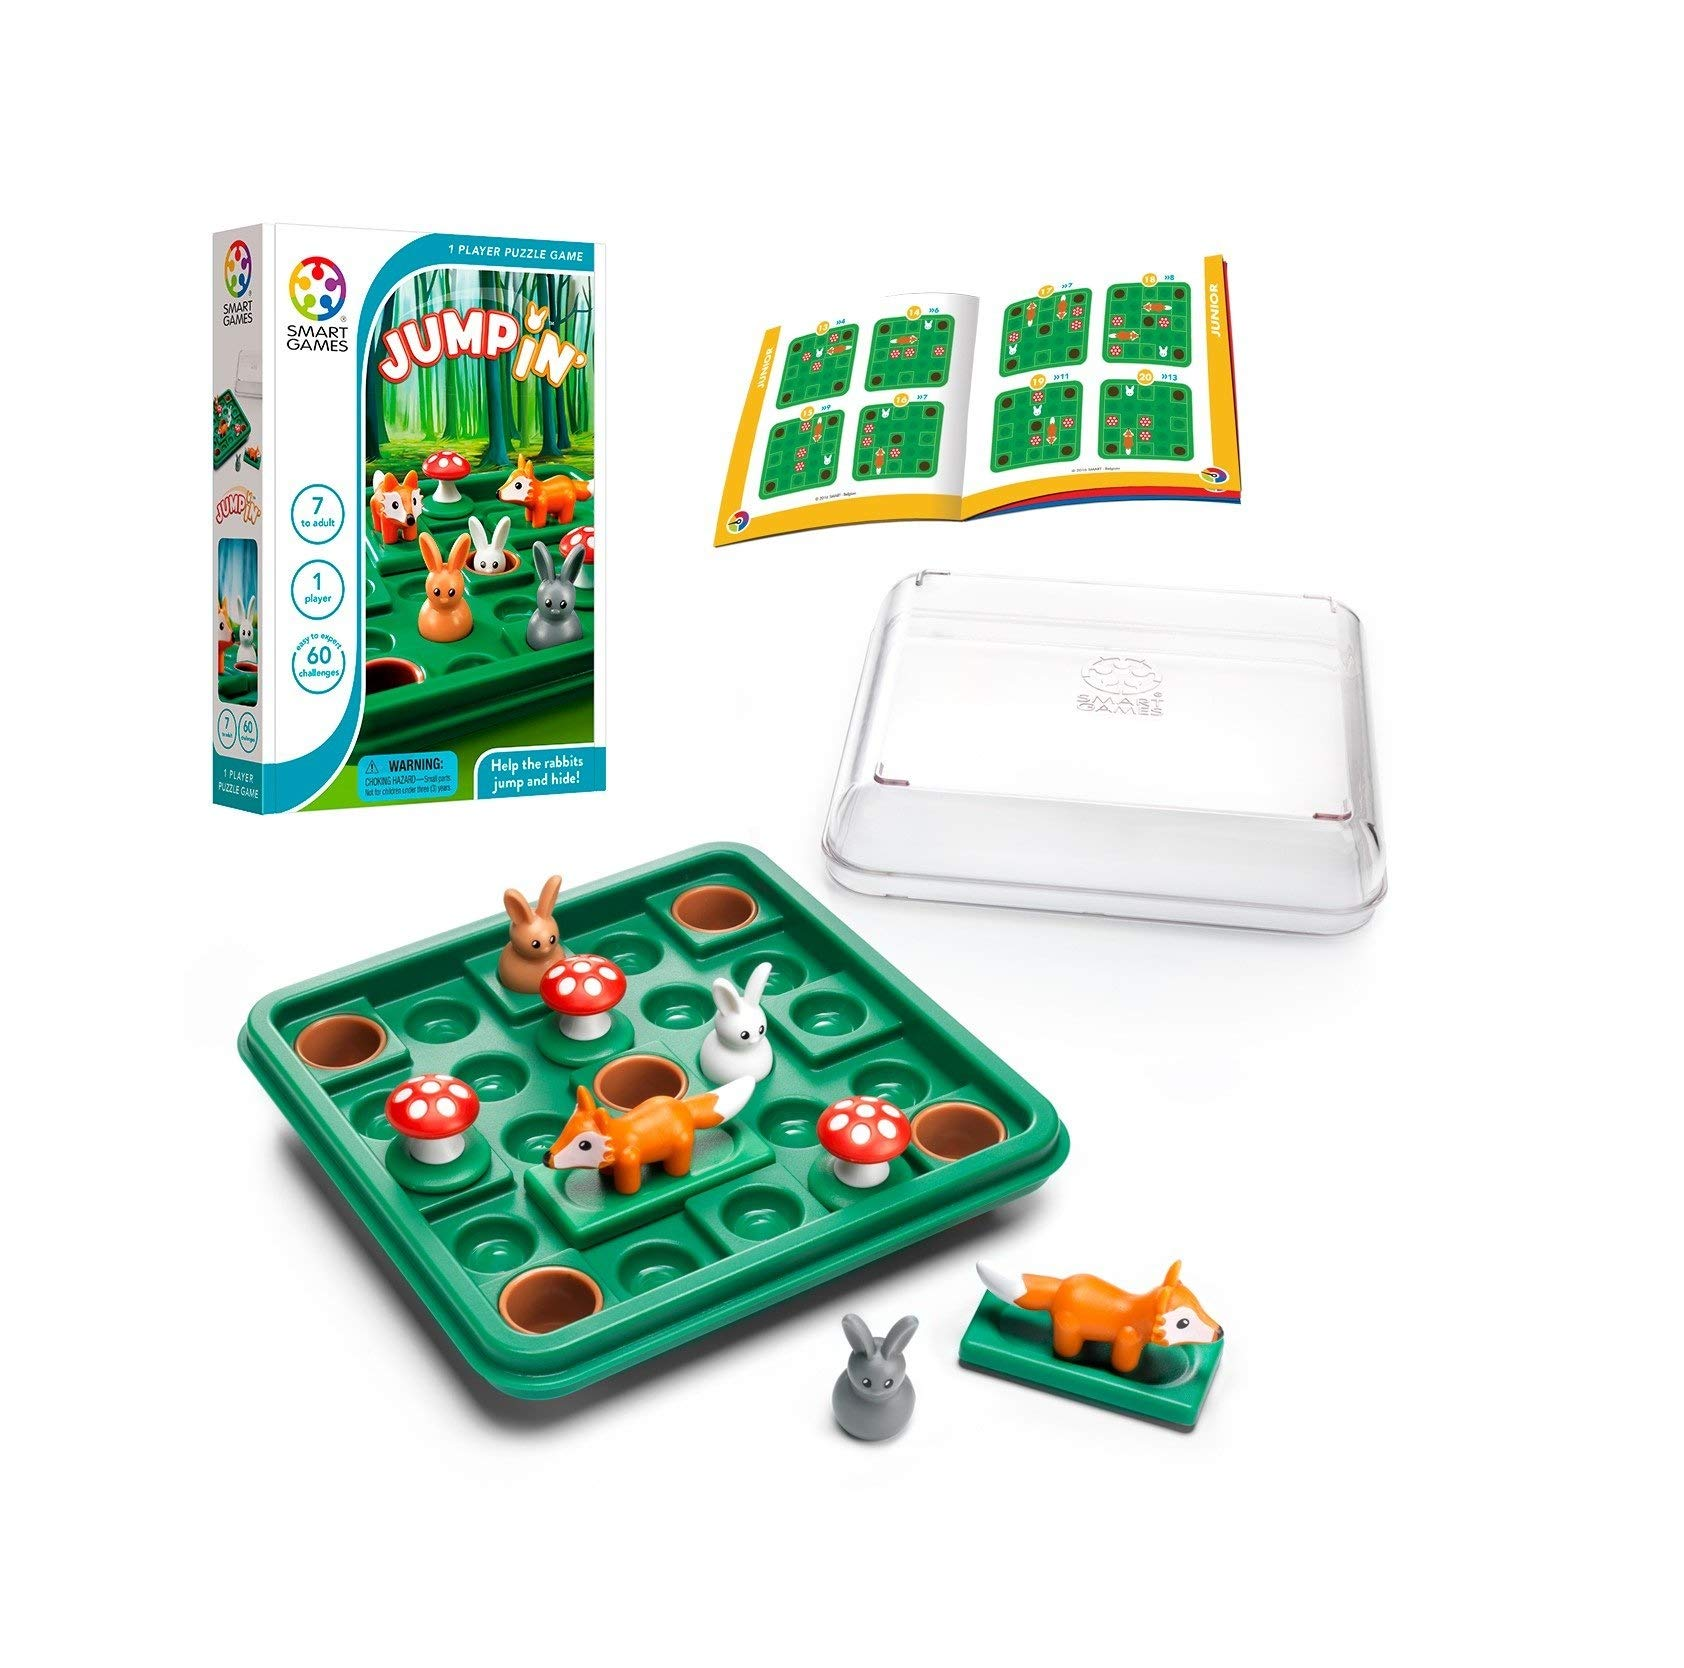 SmartGames Jump in', a Cognitive Skill-Building Travel Puzzle Game for Kids and Adults Ages 7 & Up, 60 Challenges in Travel-Friendly Case. by SmartGames